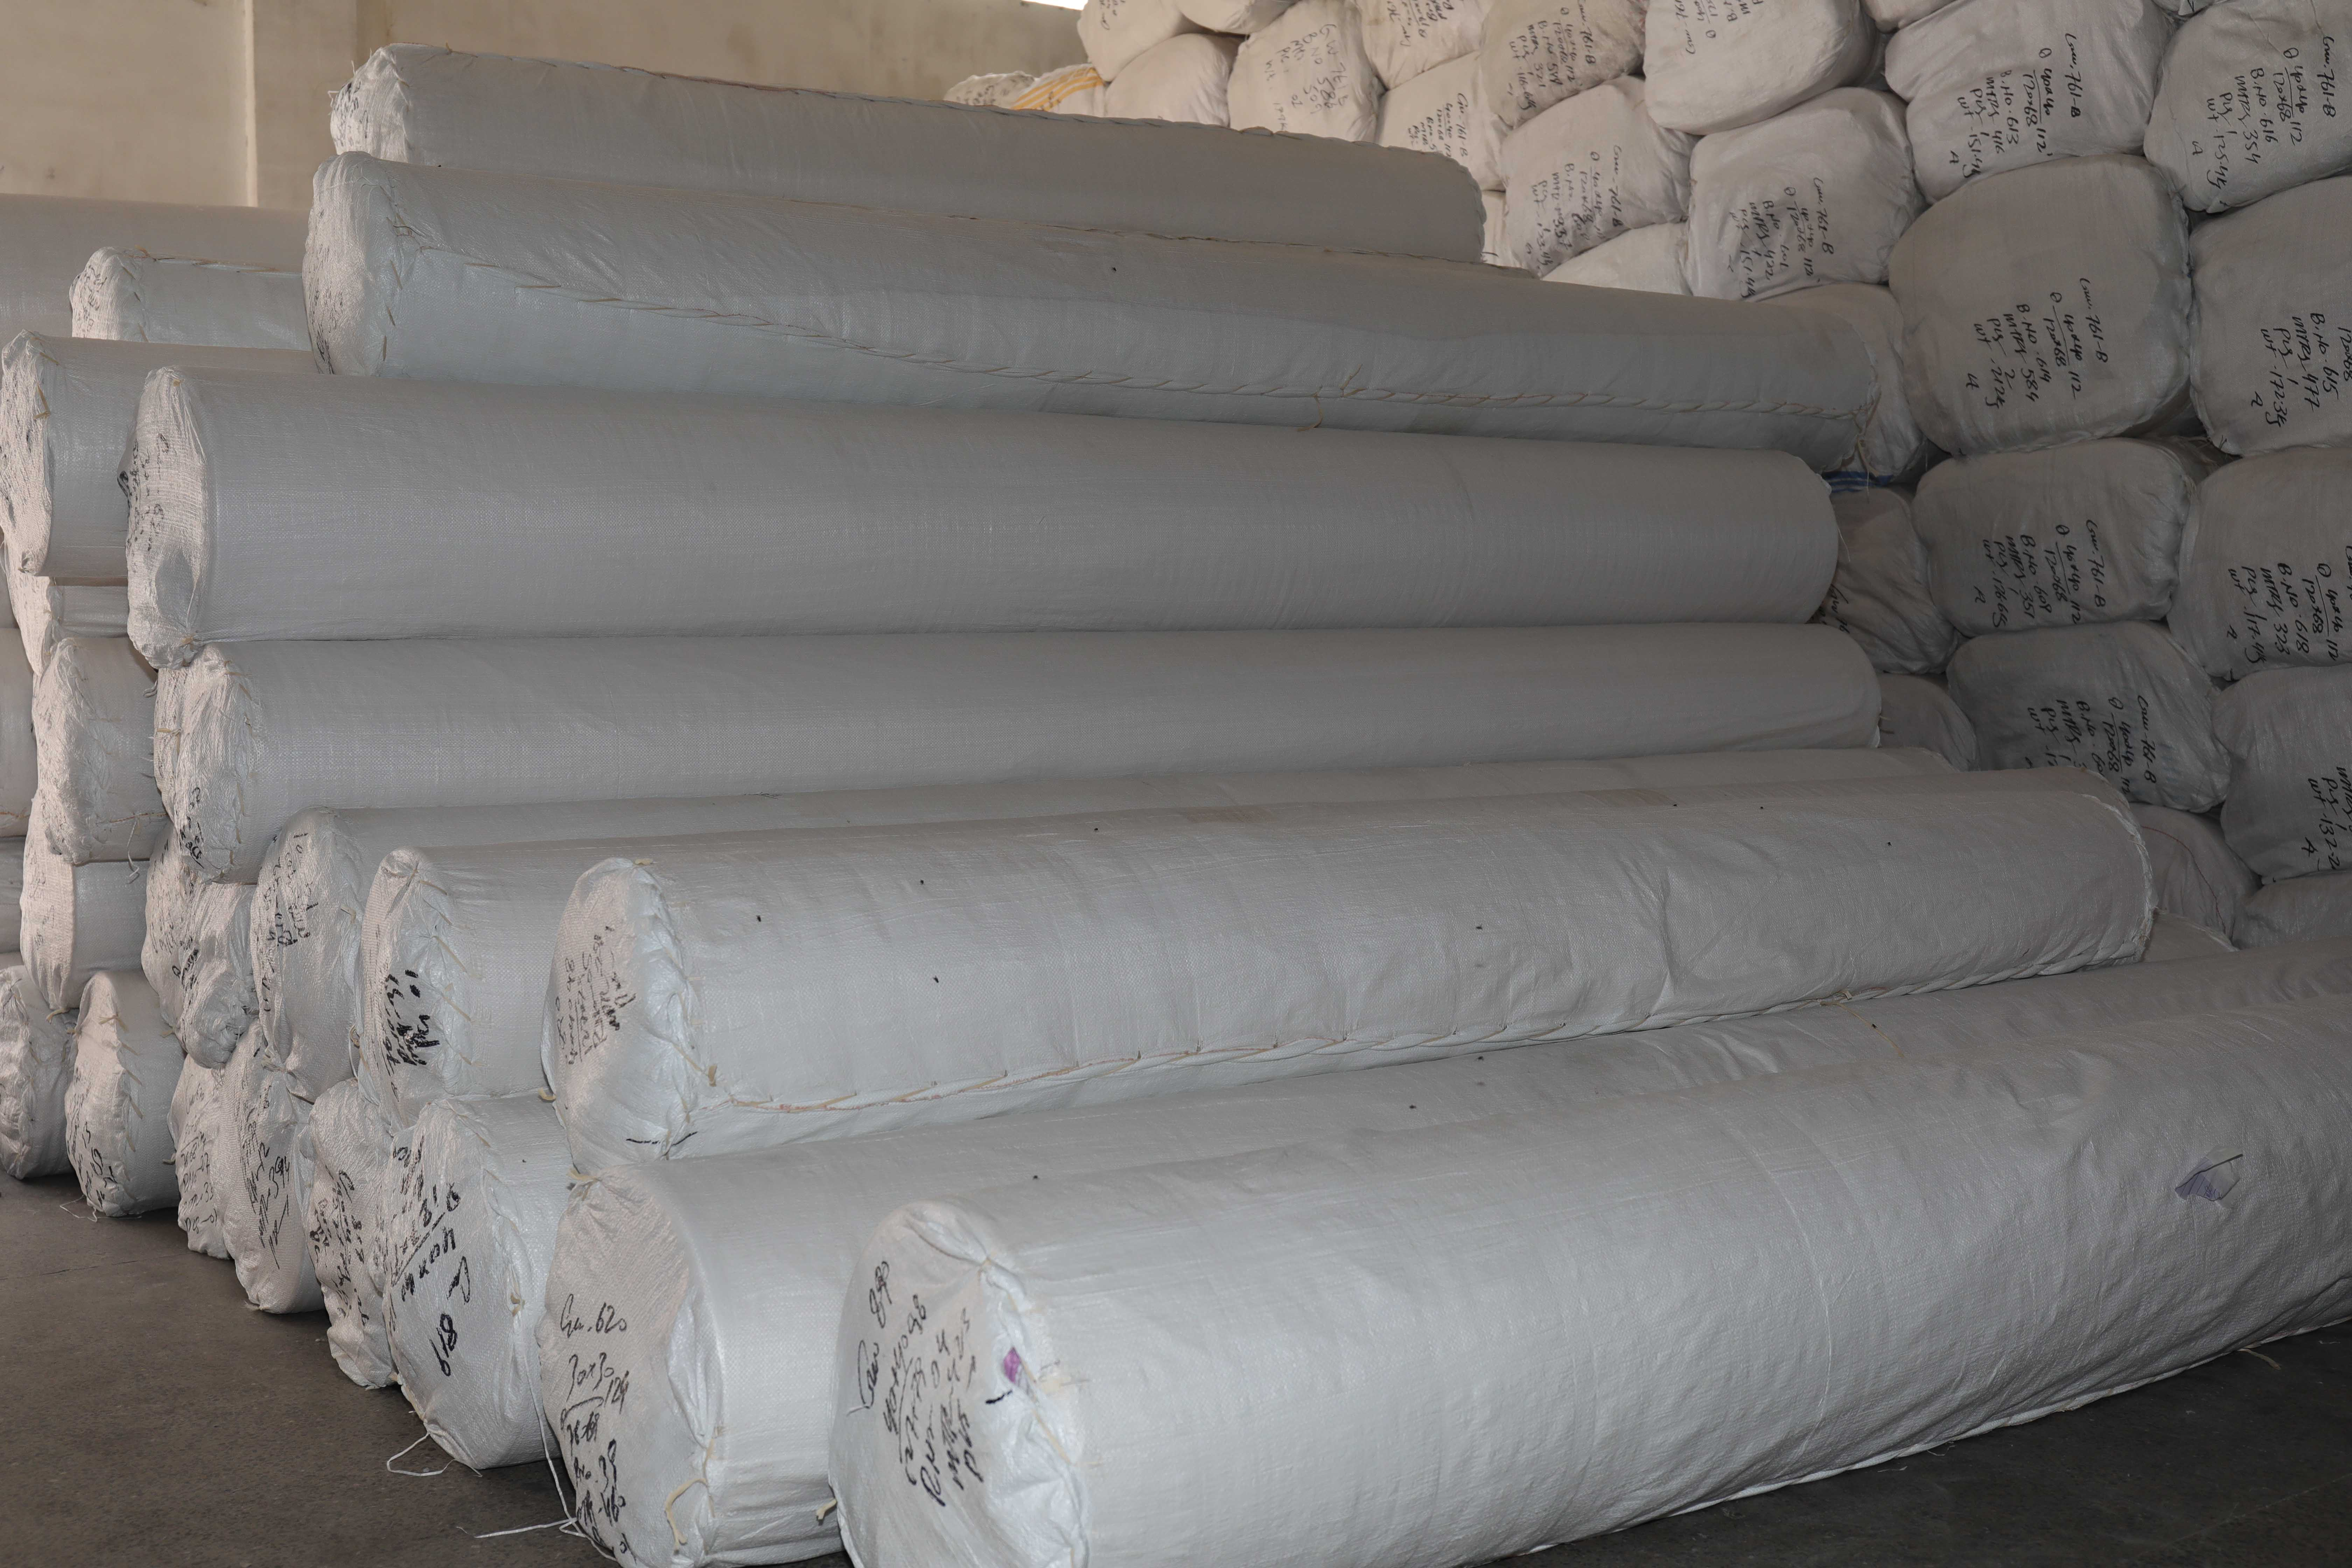 Greige/Grey Fabric for Bedsheeting T144, T200, T300 in 100% Cotton, Polycotton 50/50, CVC 60/40 and 80/20